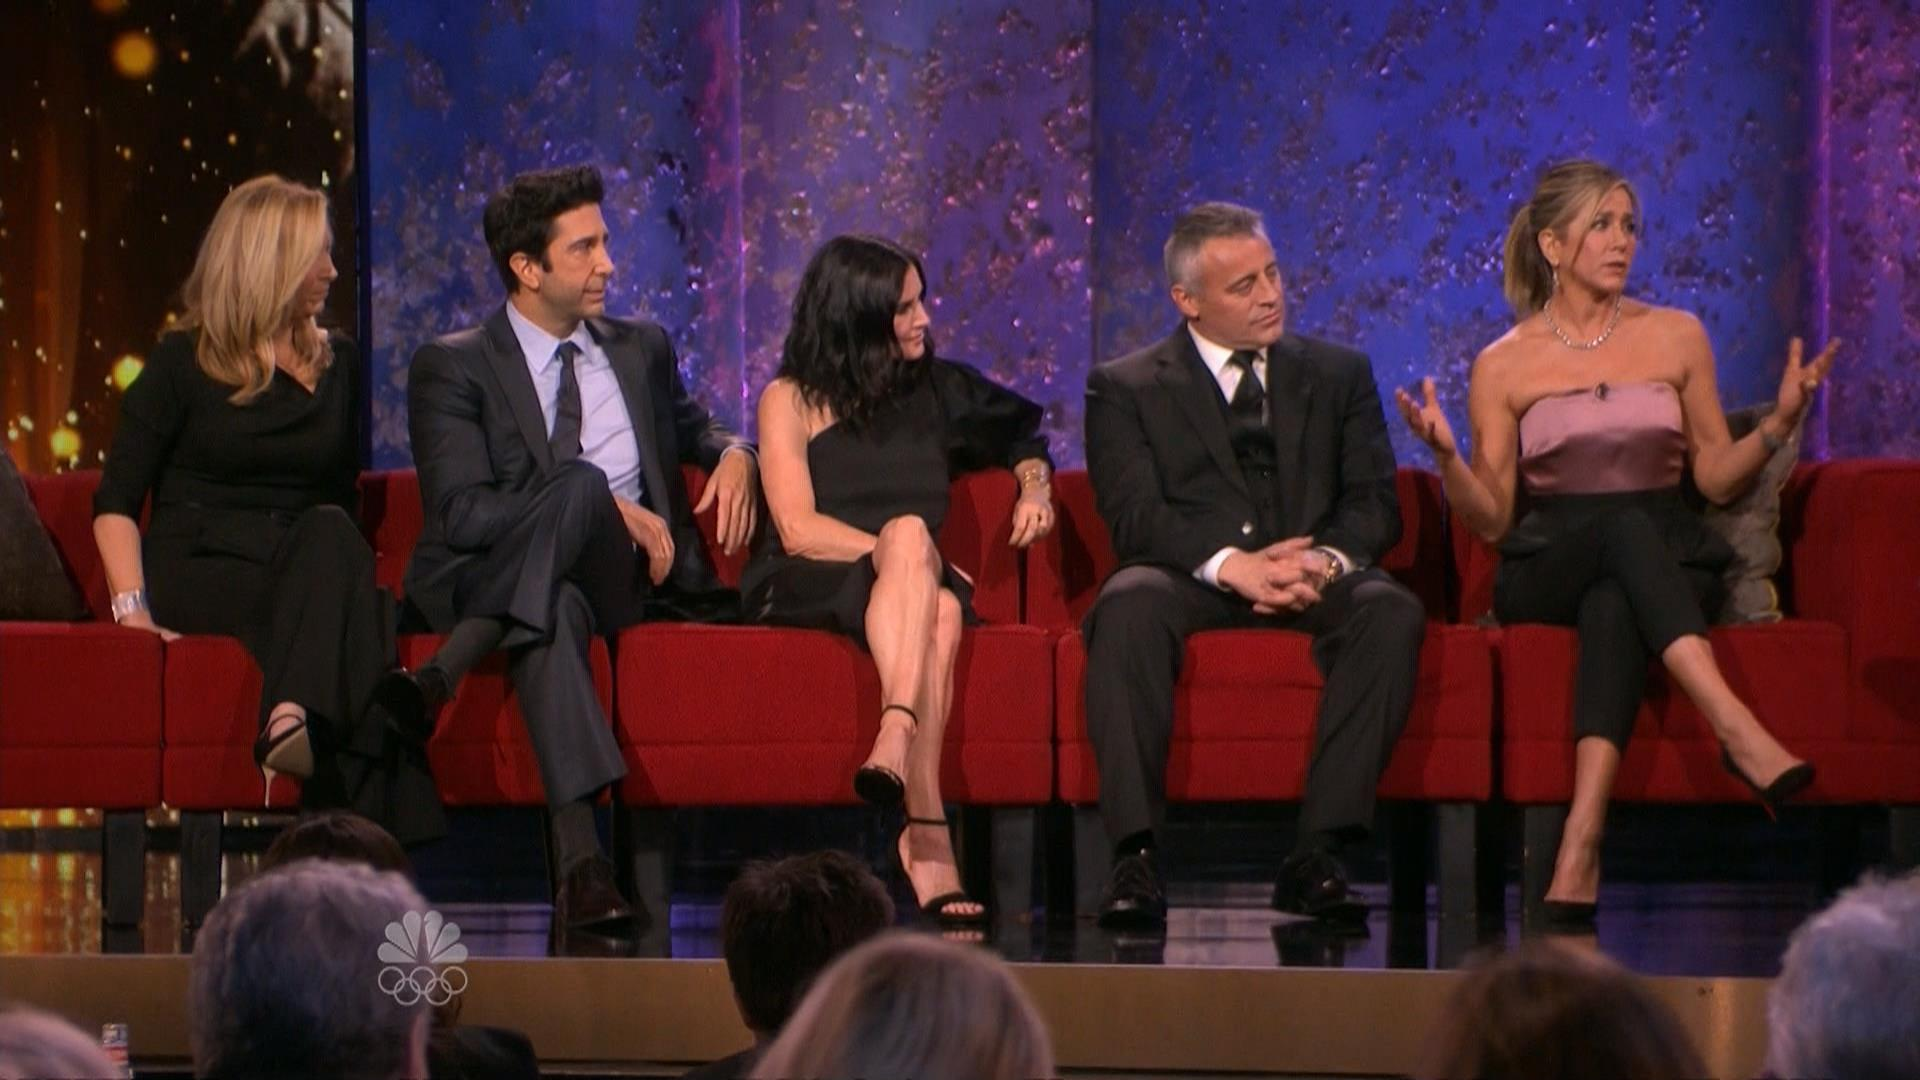 �friends� cast reunites and internet responds with love